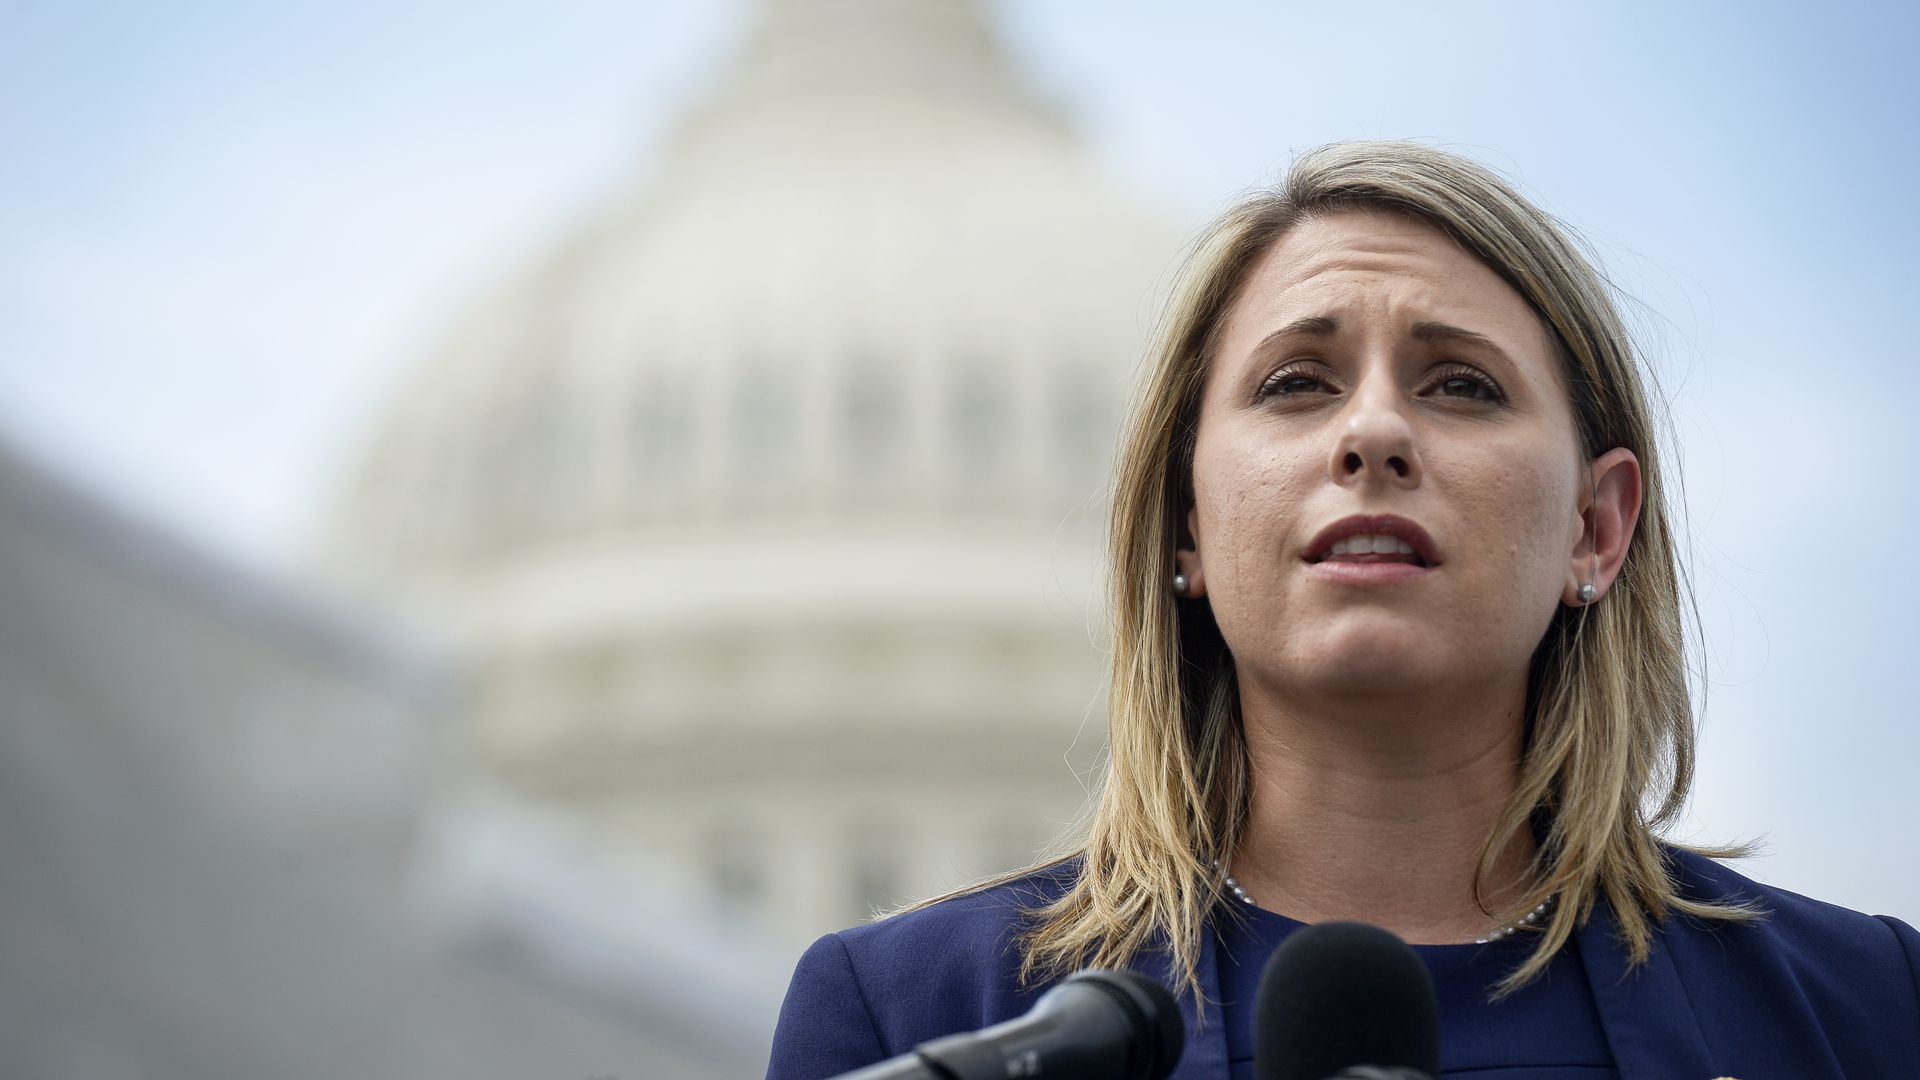 Rep. Katie Hill, D-Calif., speaks at a press conference to introduce ACTION for National Service outside of the Capitol on Tuesday June 25